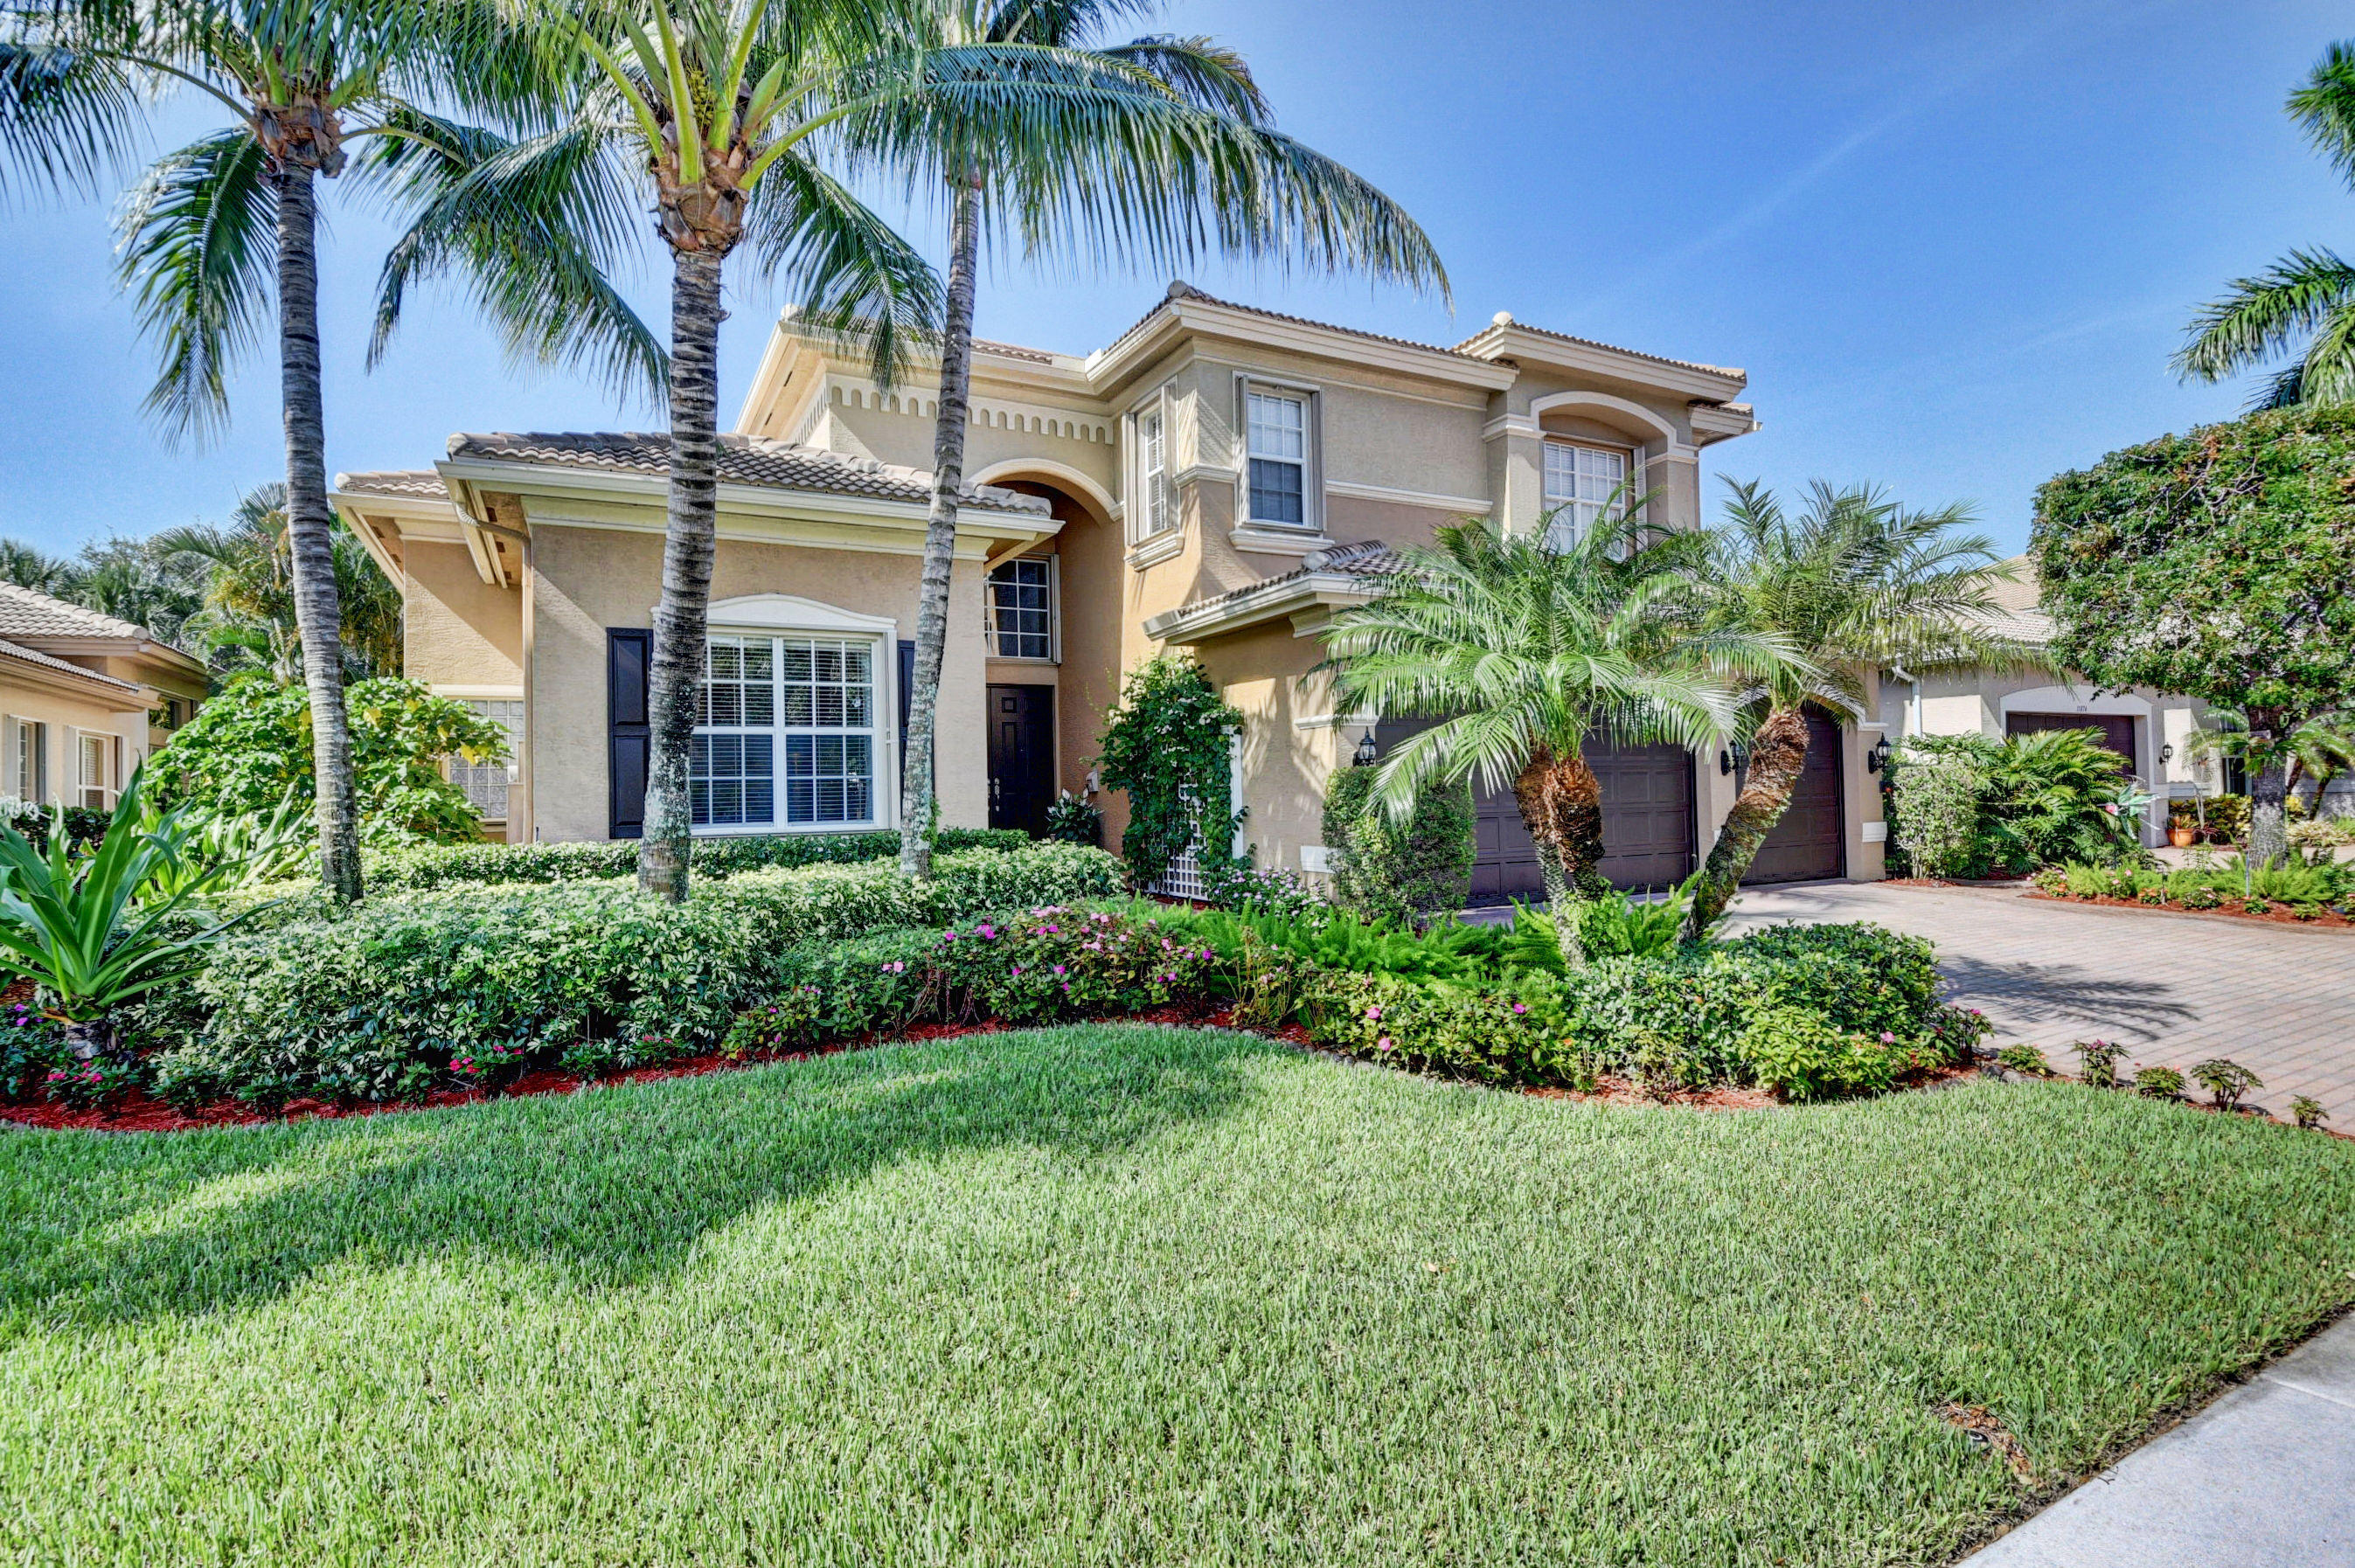 11868 Foxbriar Lake Trail  Boynton Beach, FL 33473